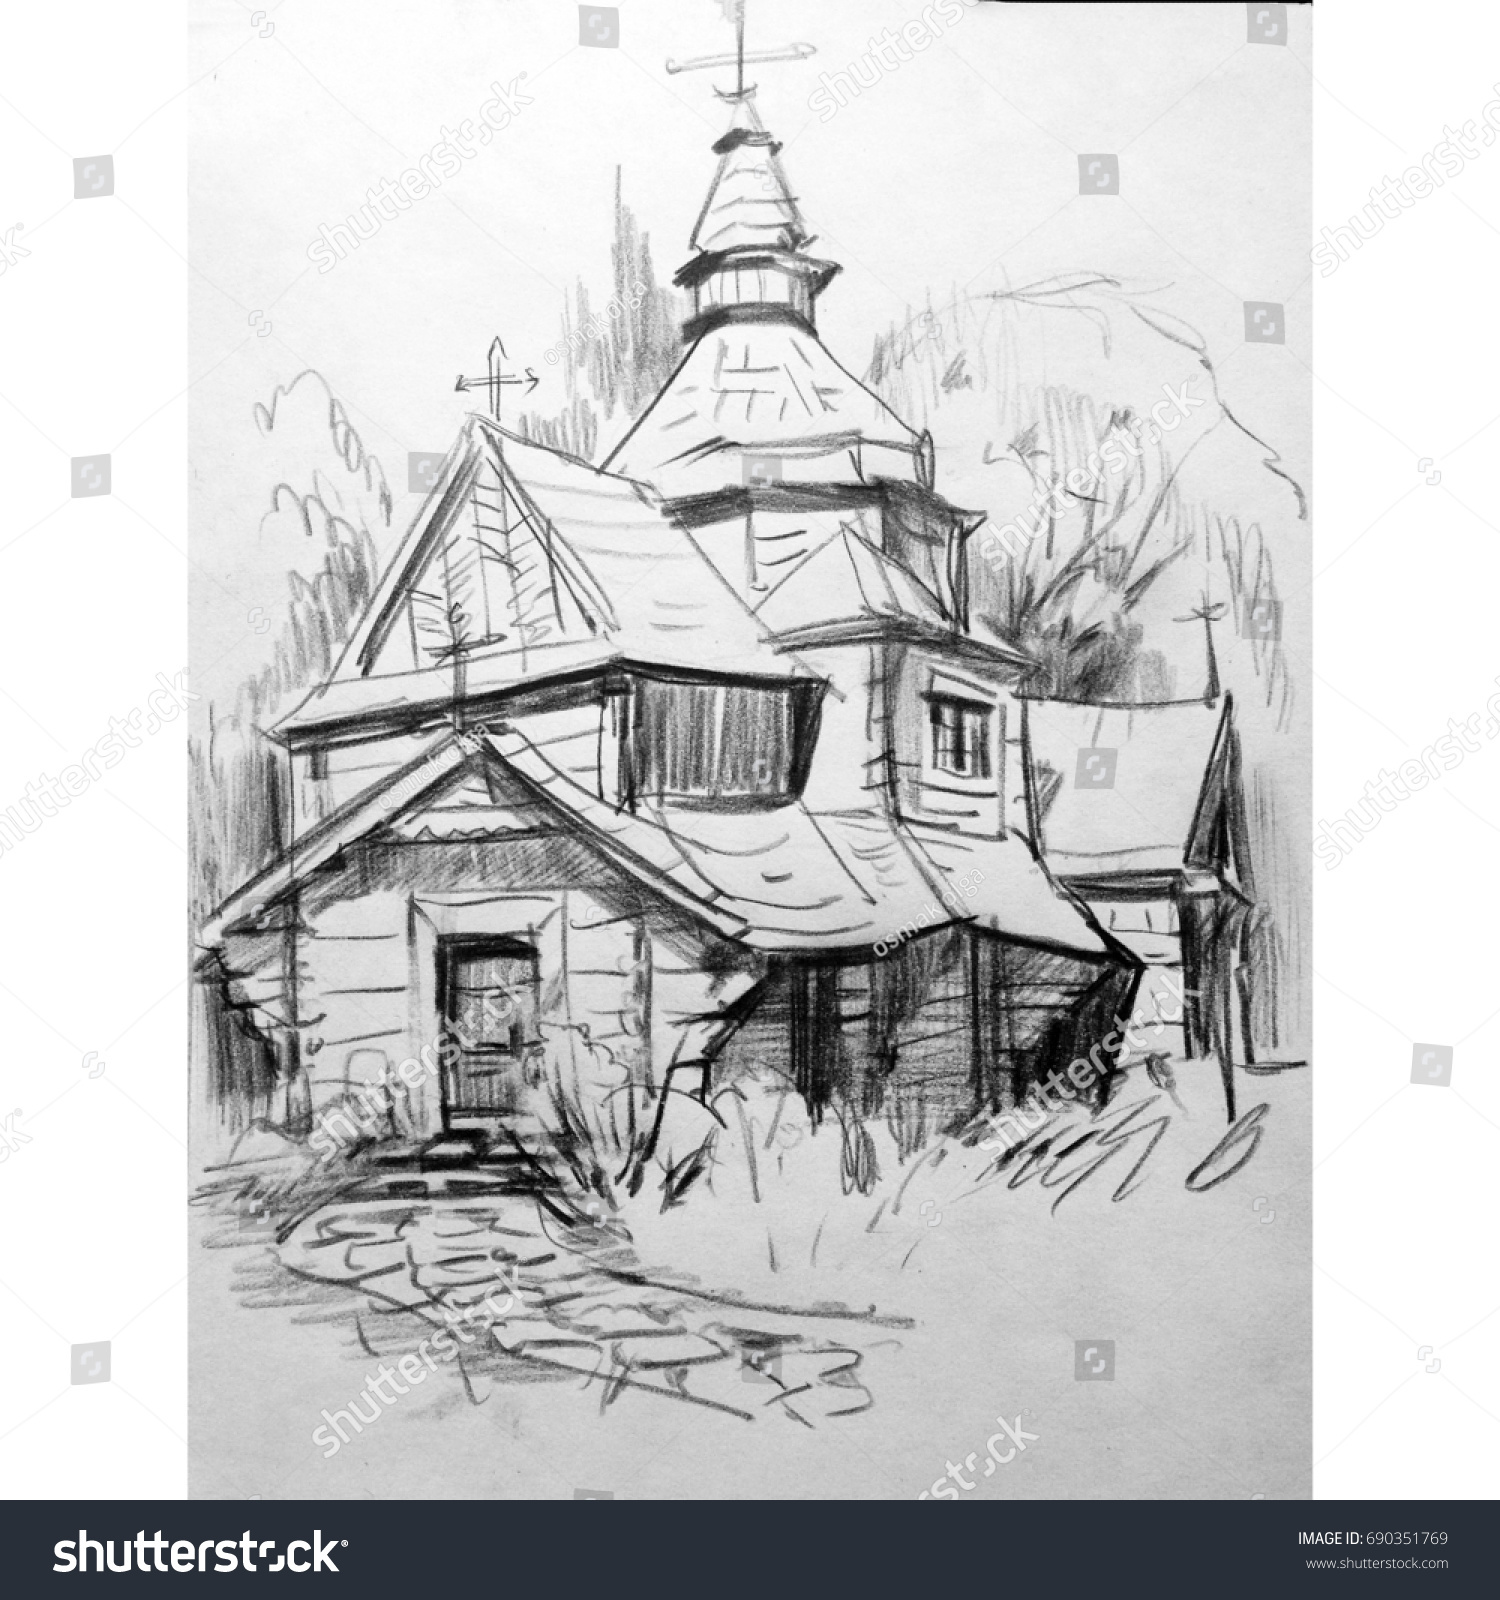 Drawing pencil landscape architecture church art nature old graphic building outline hatching handmade travel tourism romantic